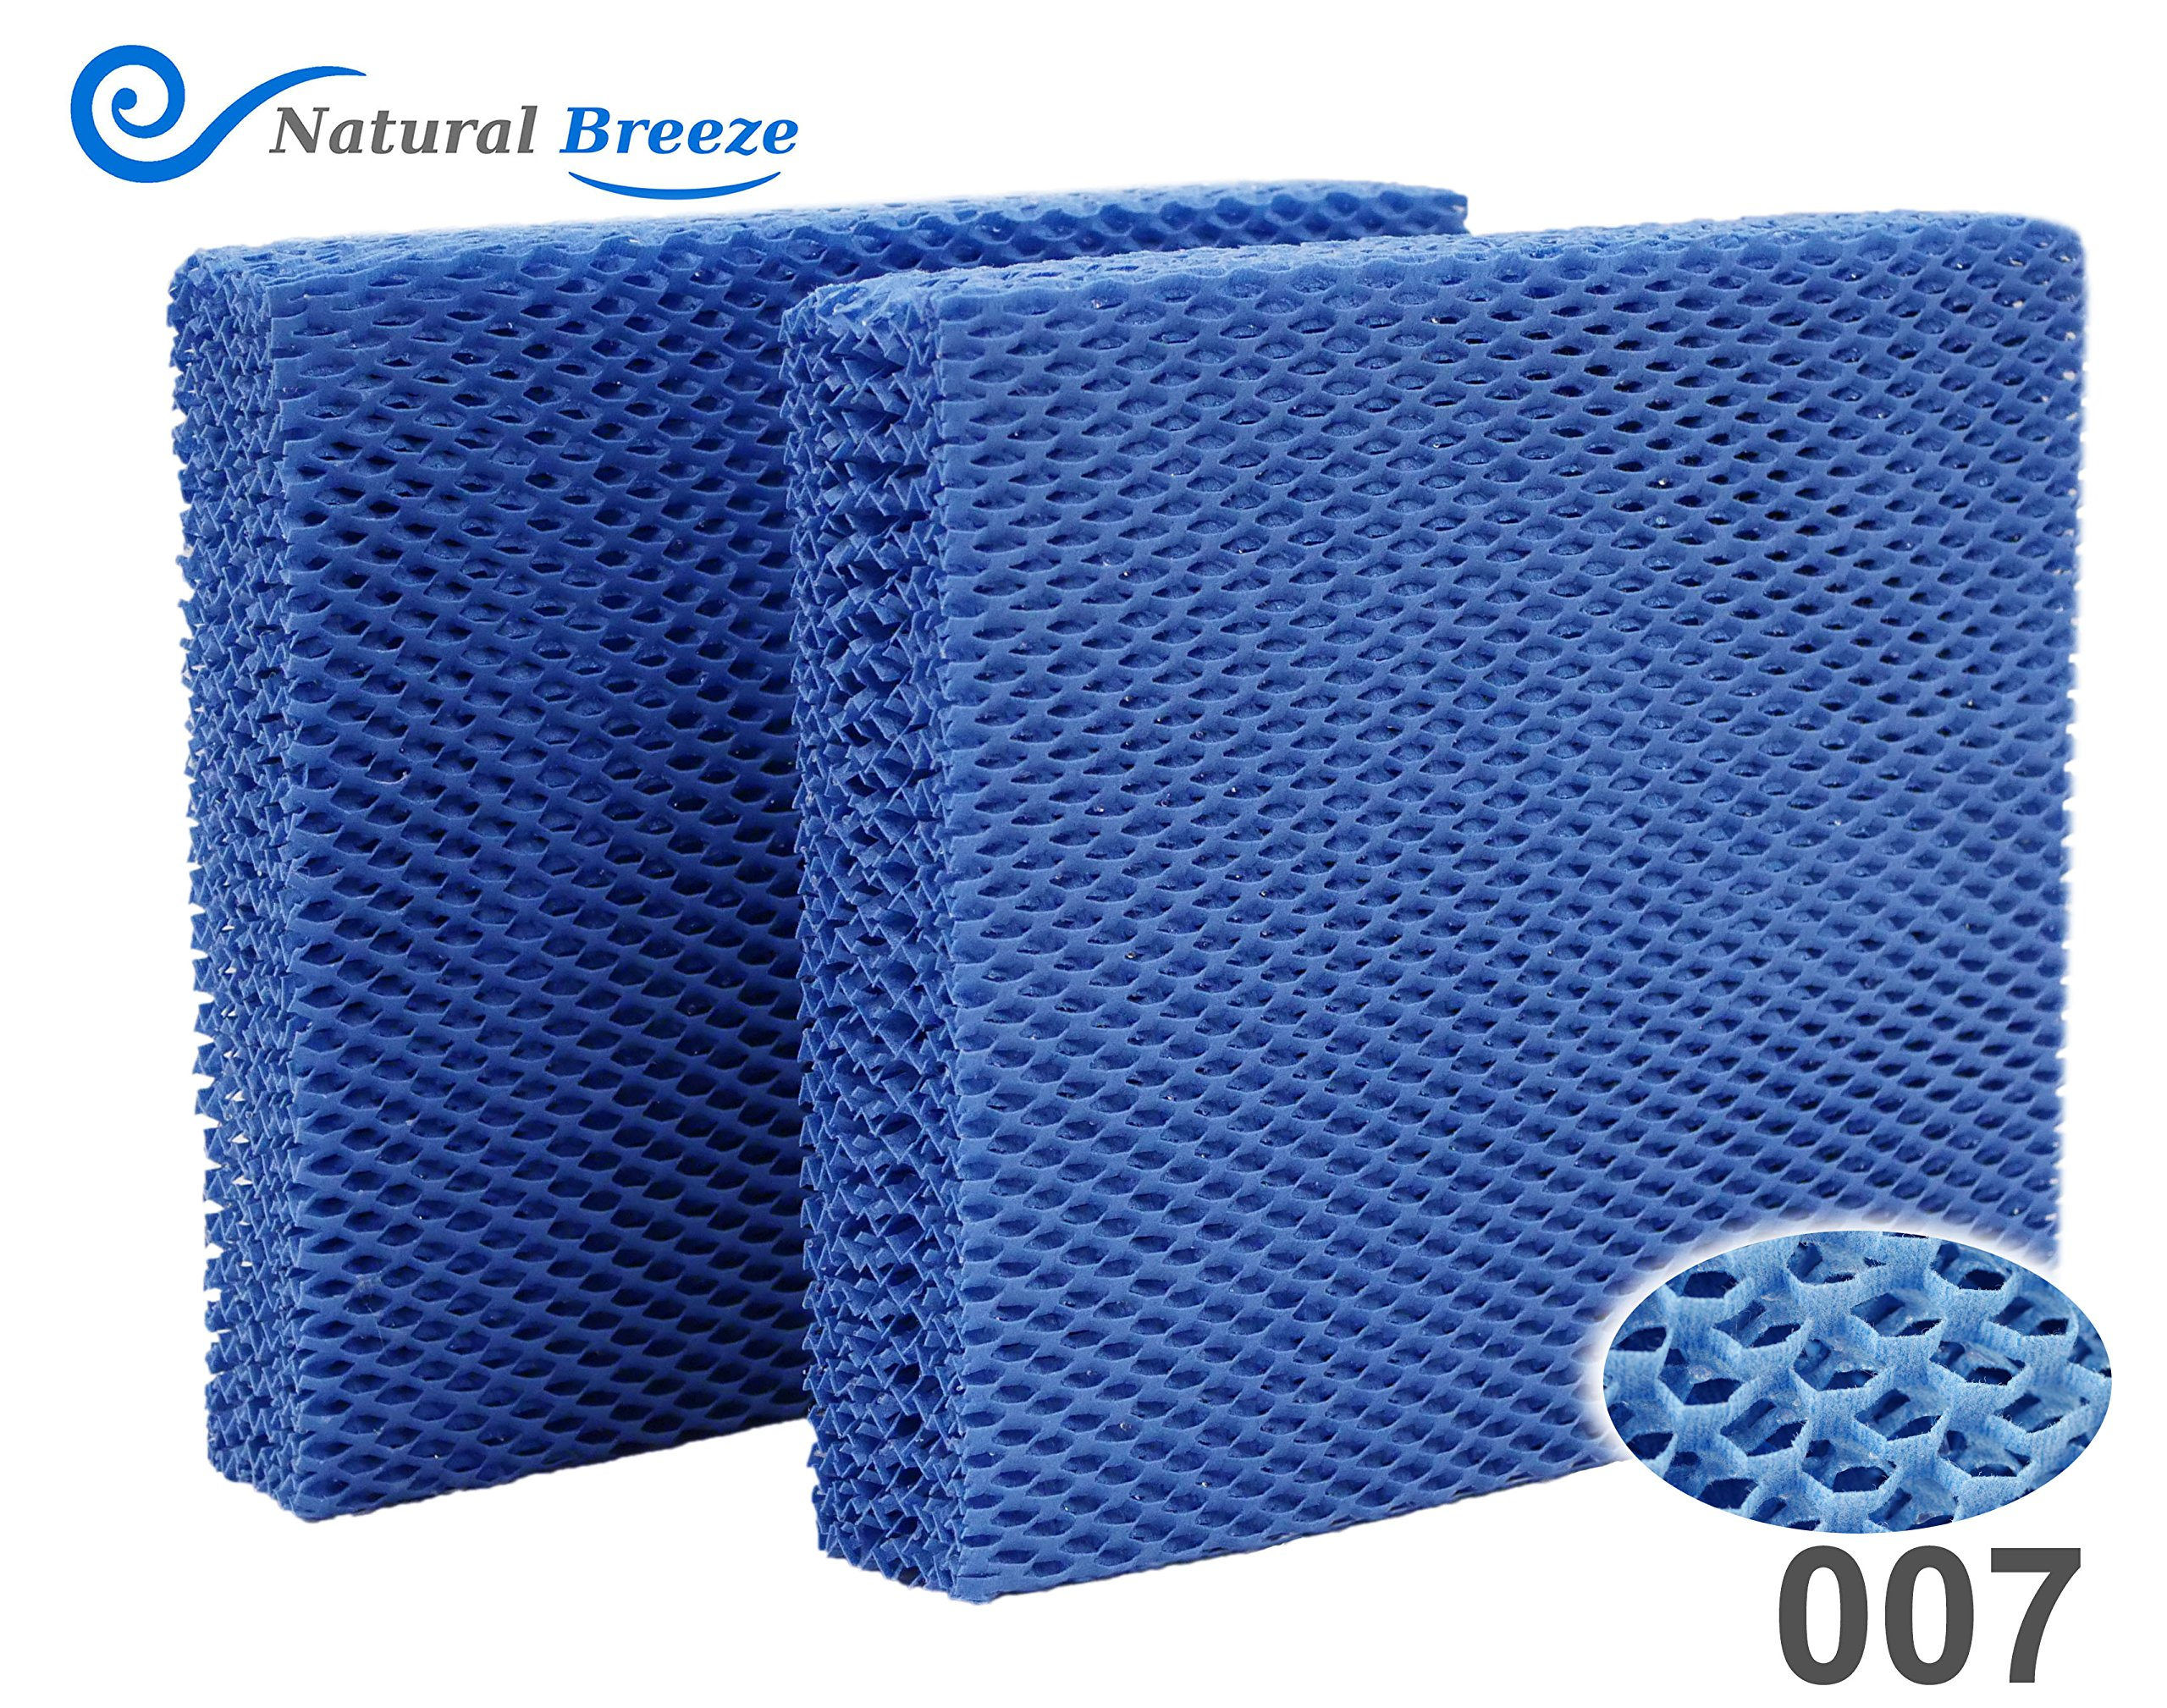 Natural-Breeze Compatible Replacement for Vornado Brand MD1-0001 Humidifier Filter MD1-0002, MD1-1002 Reusable